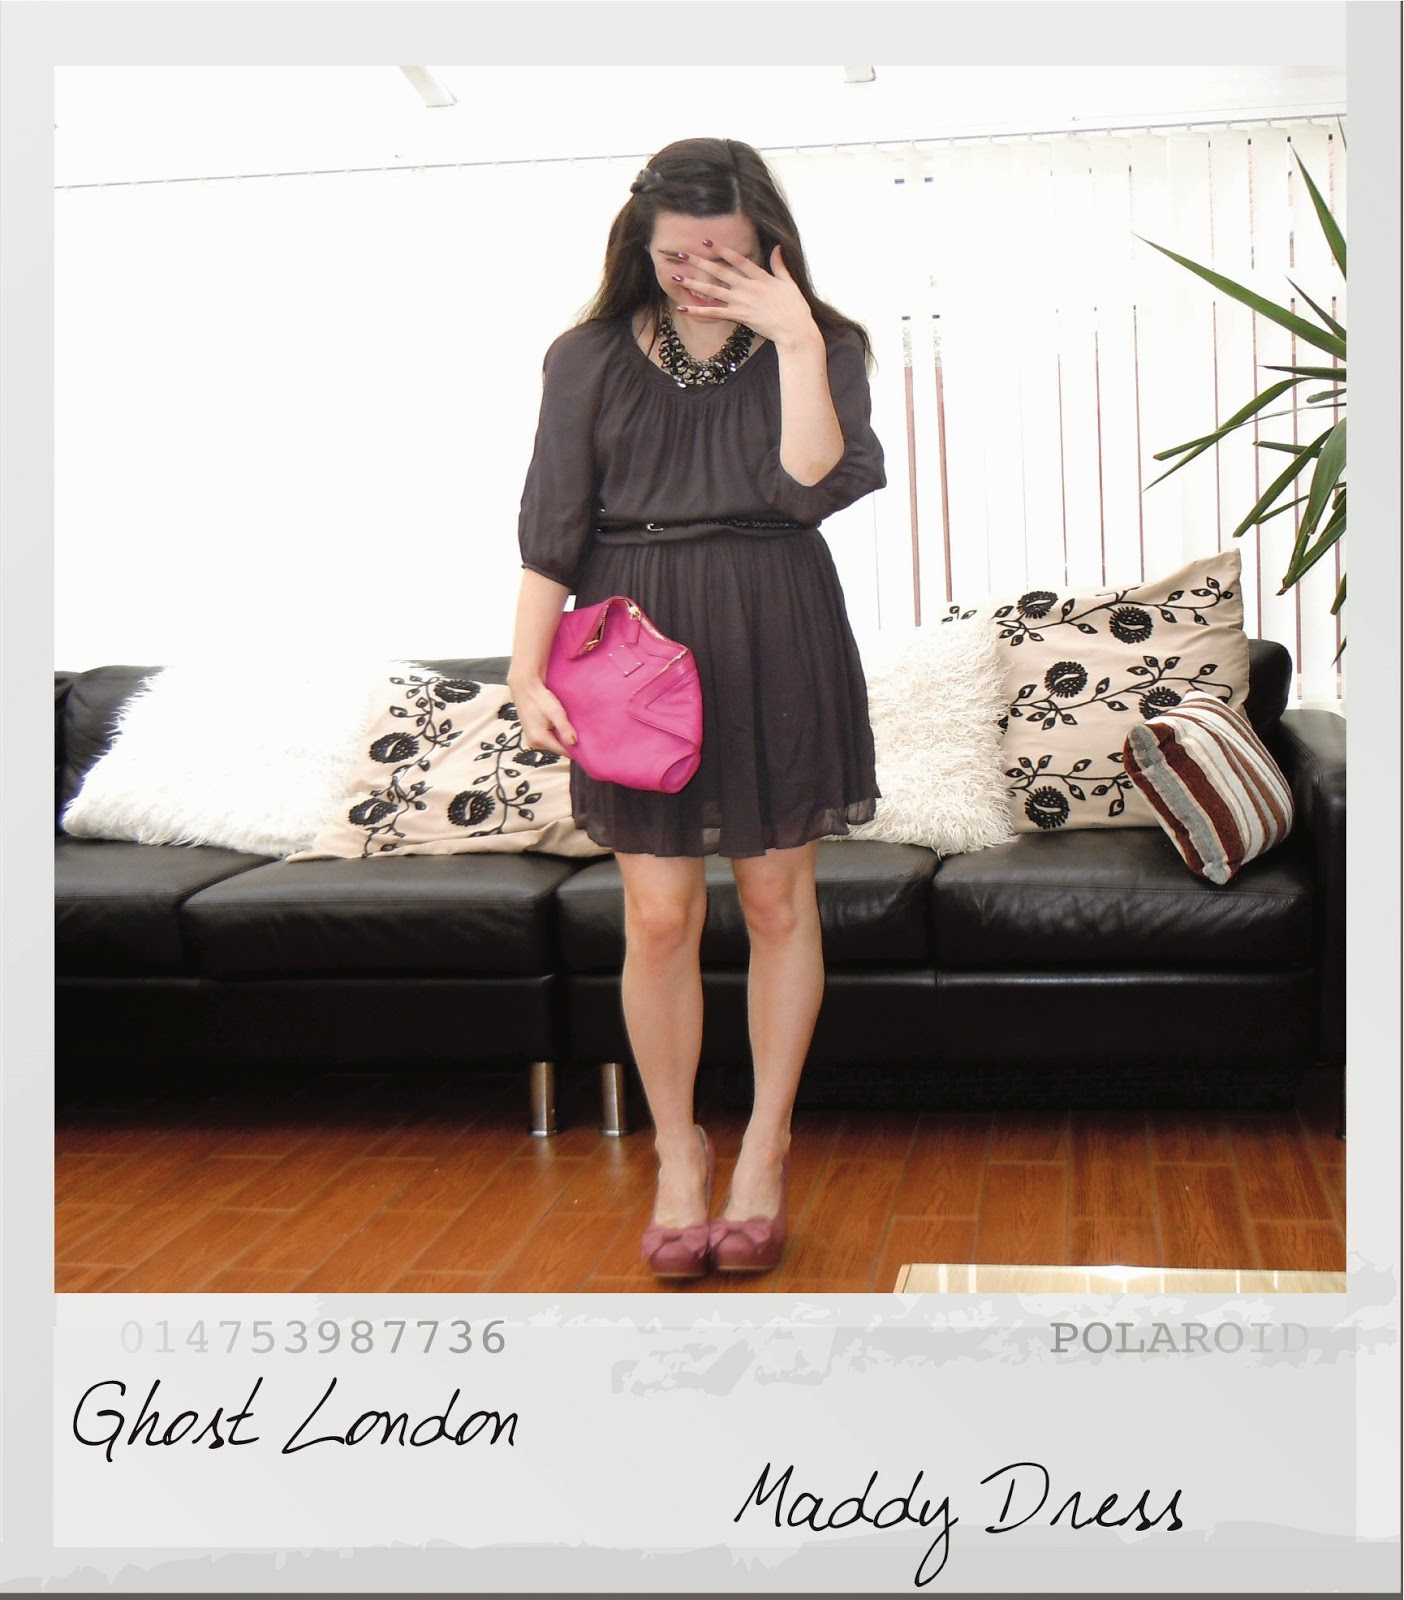 http://www.kellysjournal.co.uk/2014/10/outfit-post-33-maddy-dress-ghost-london.html